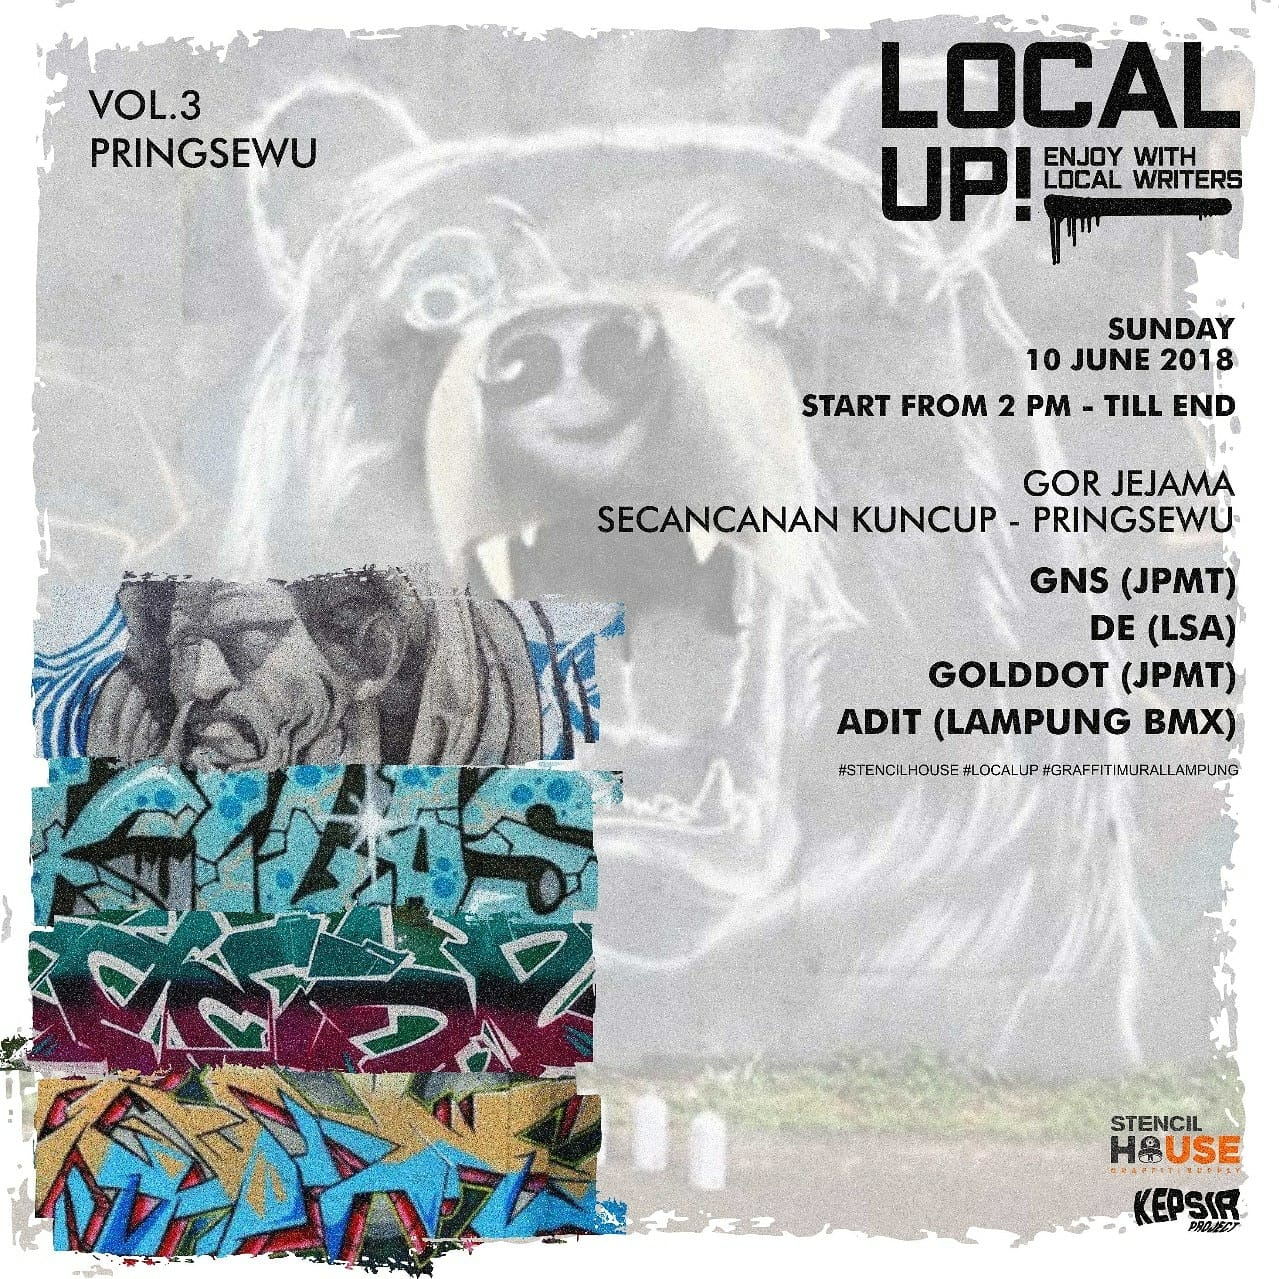 LOCAL UP VOL3